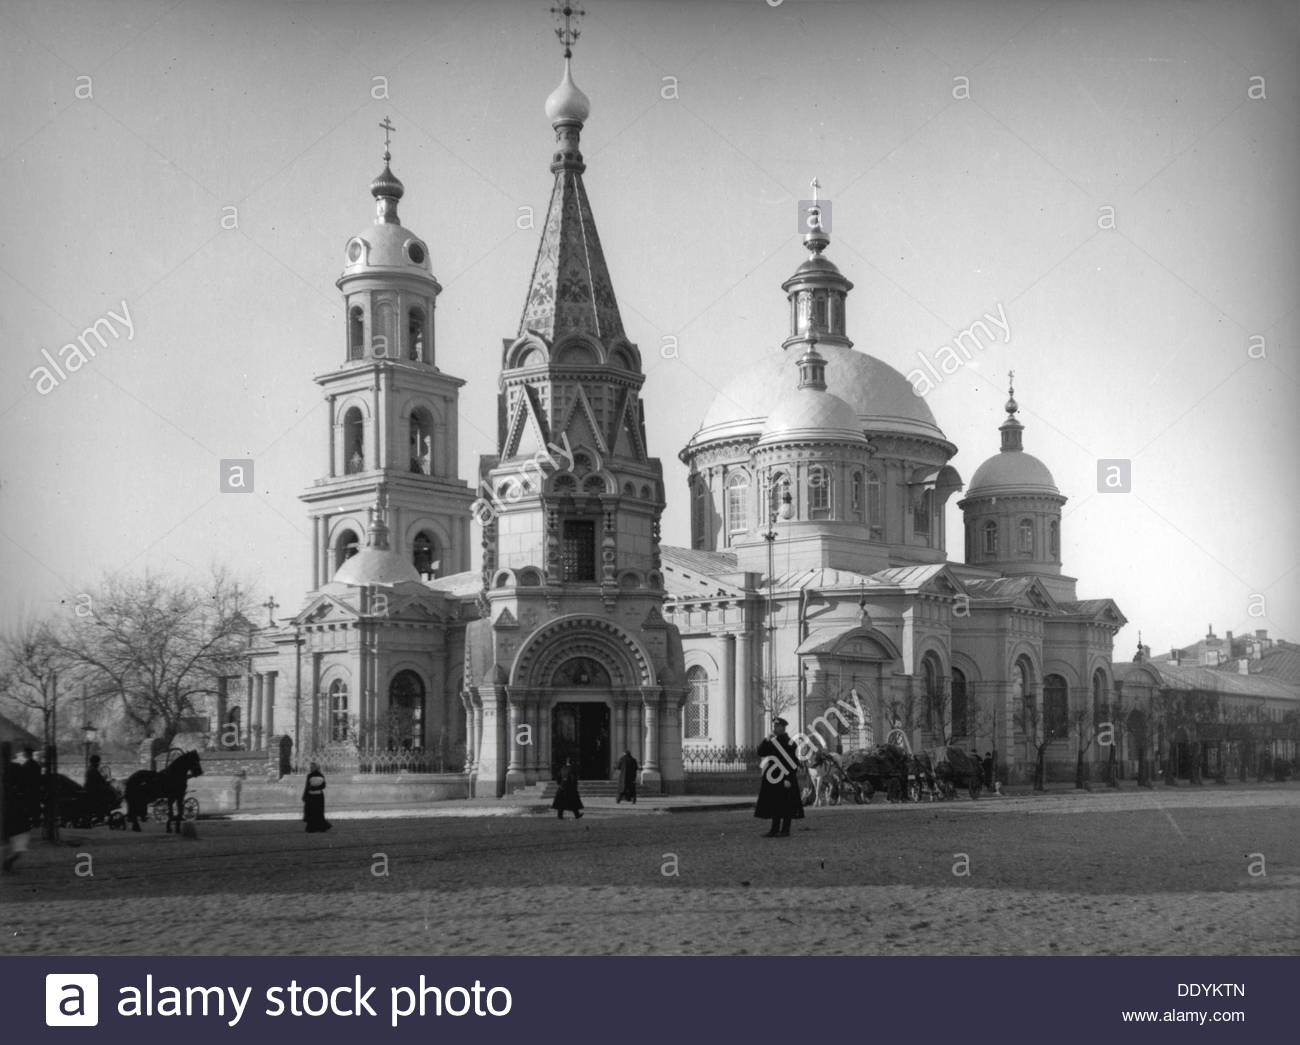 The Church of St Basil of Caesarea, Moscow, Russia, c1900-c1905. - Stock Image